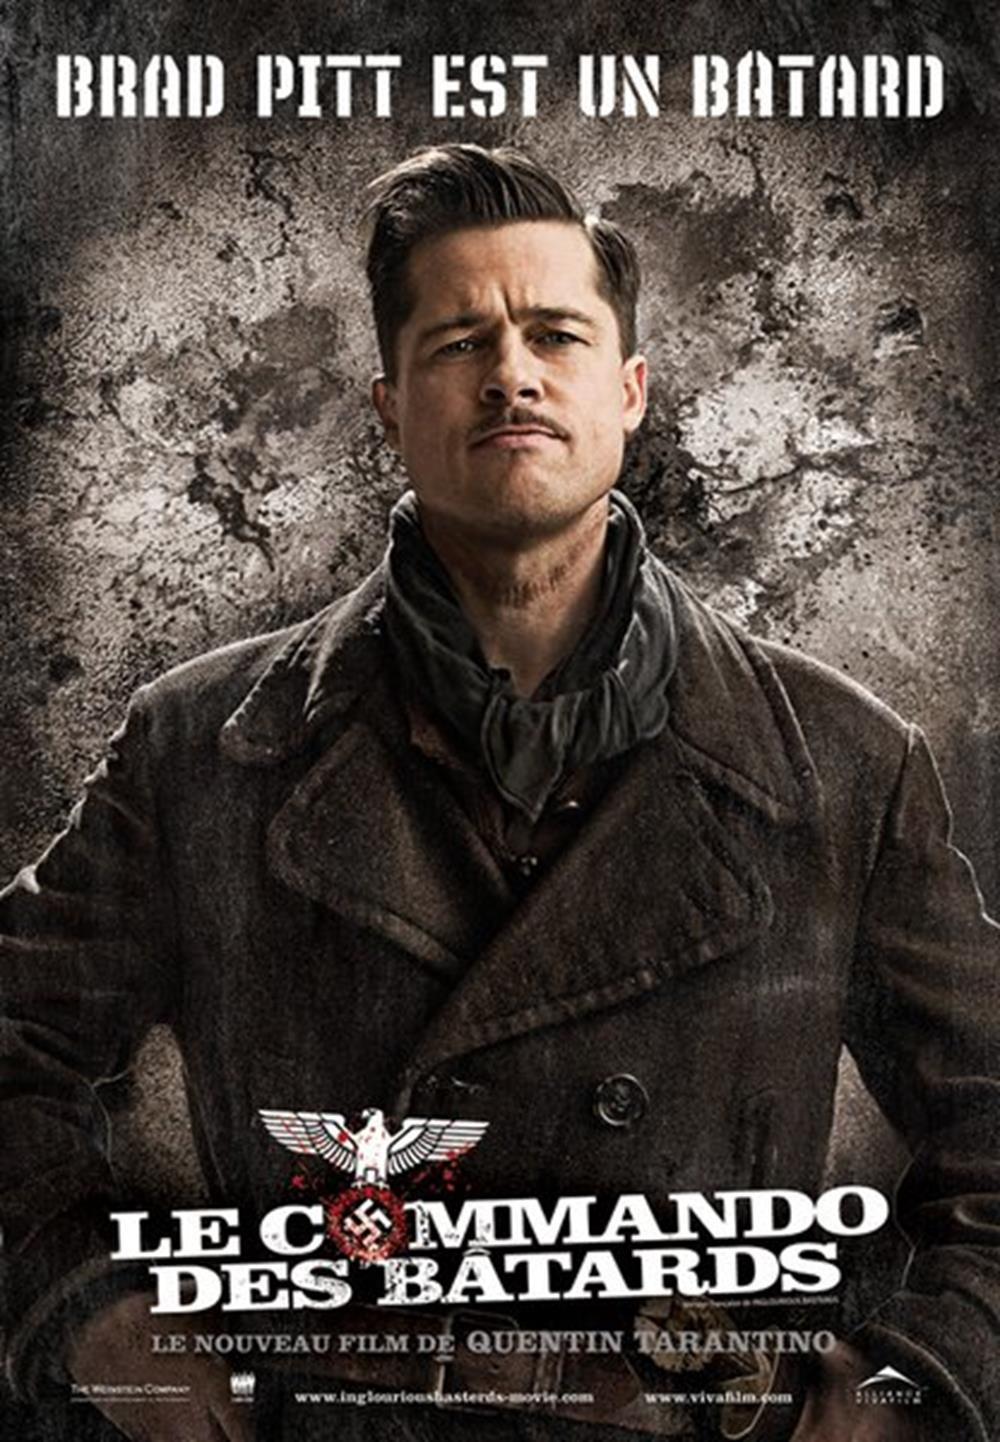 affiche cinéma quebec traduction Inglorious bastard